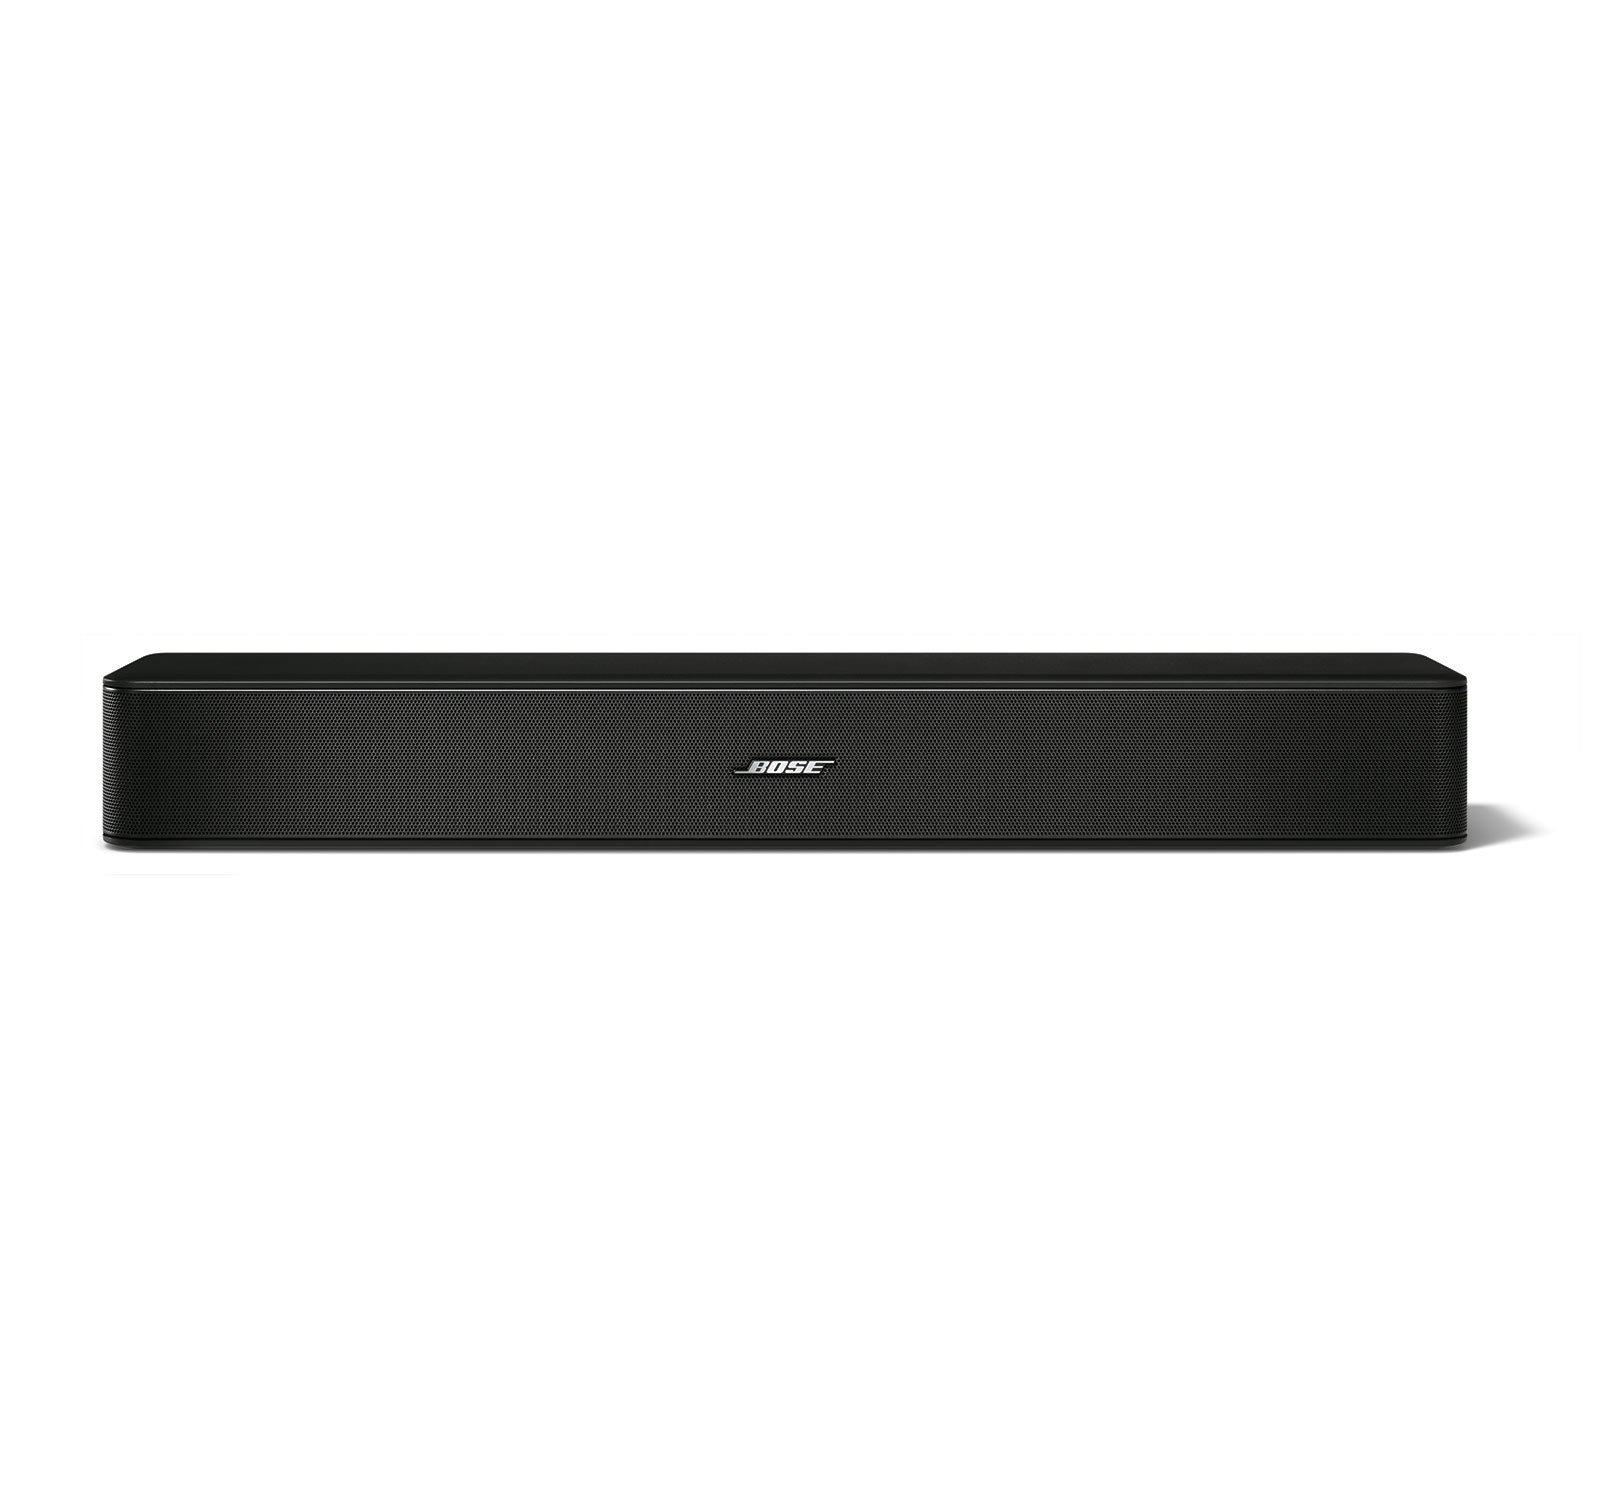 Bose Solo 5 TV Sound System with Plugable USB 2.0 Bluetooth Adapter (USB-BT4LE) by Bose (Image #2)